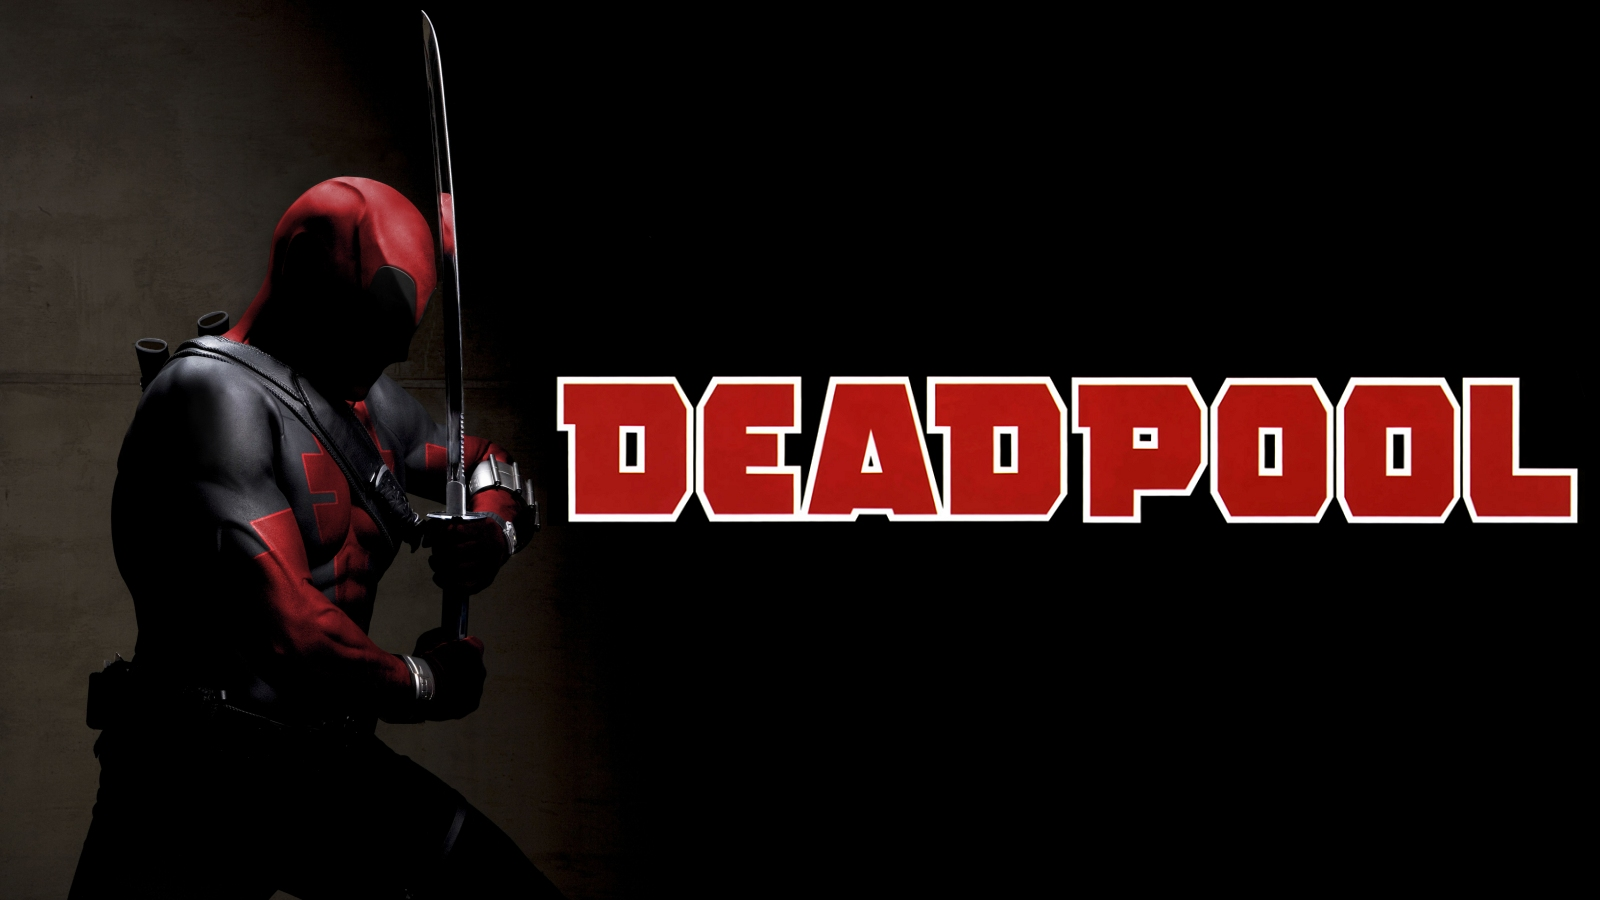 Comics - Deadpool  Superman  Bleach Wallpaper